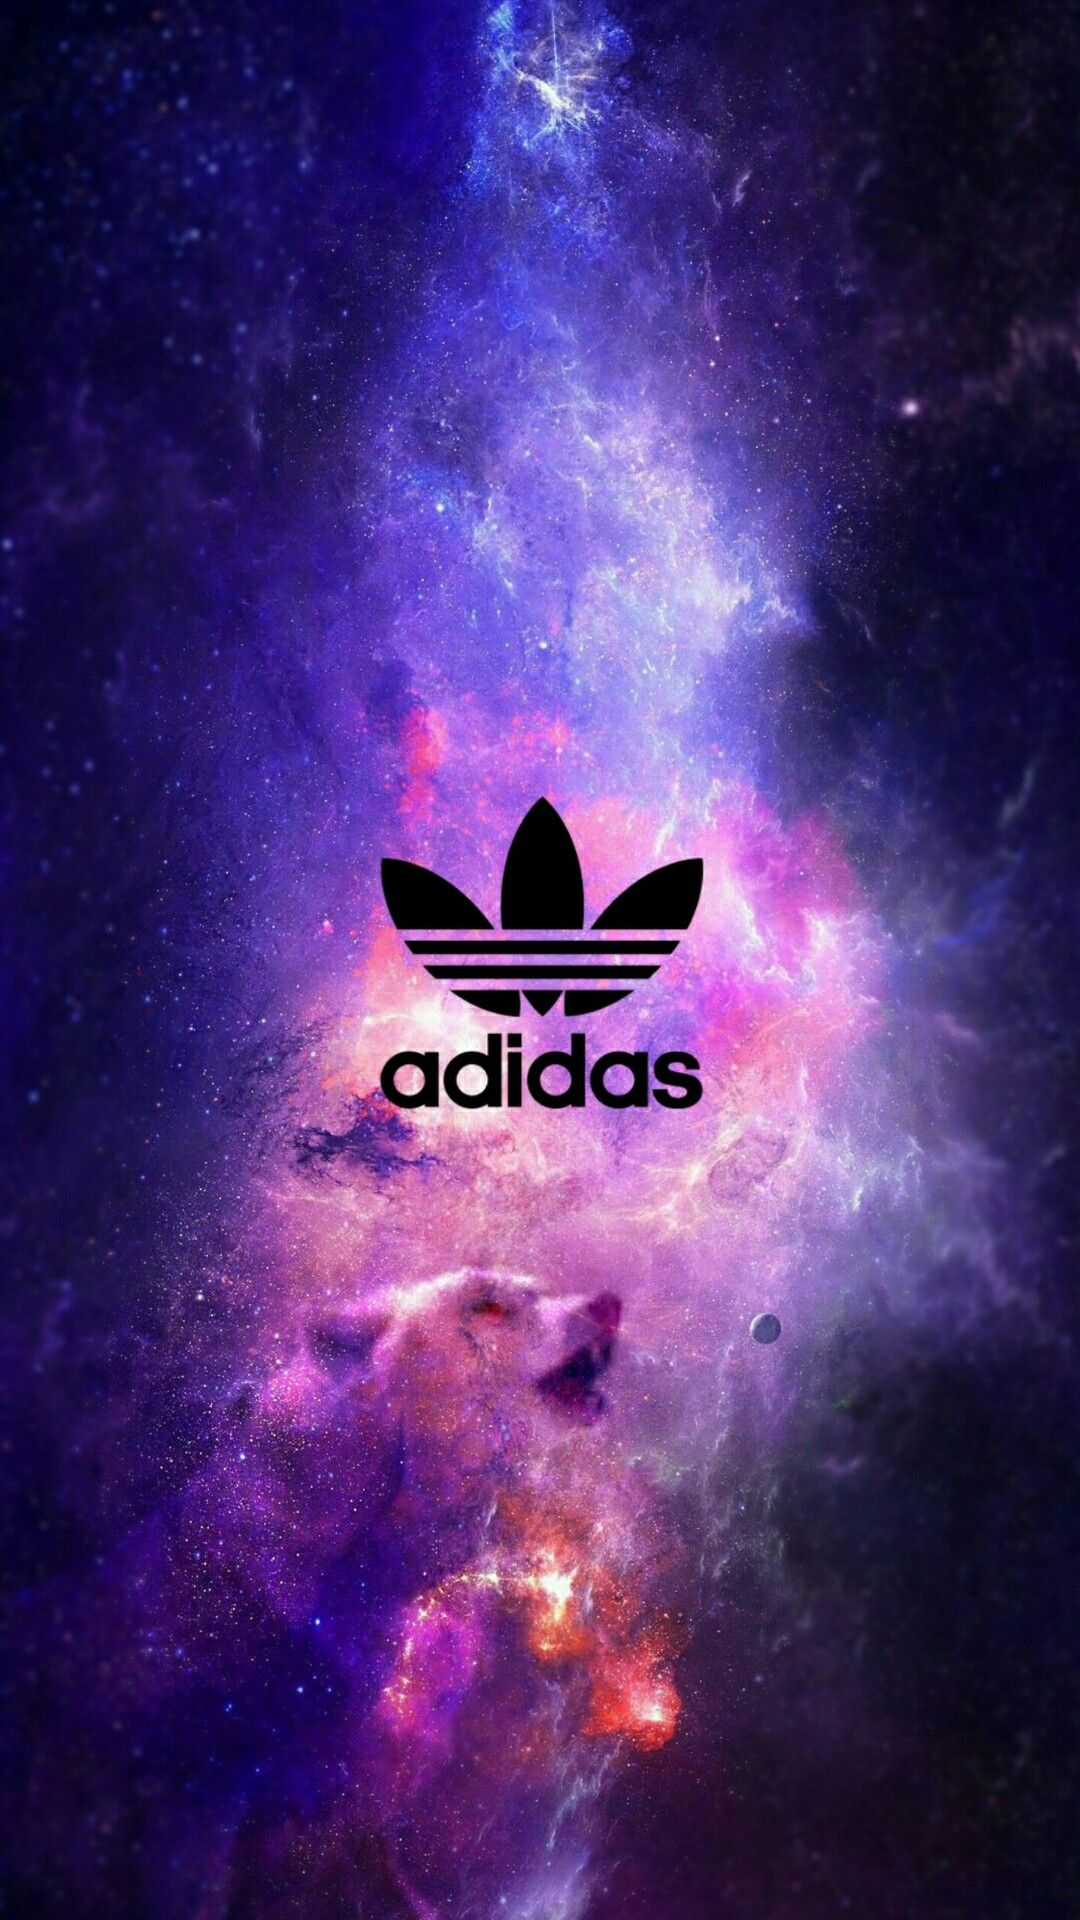 Adidas Wallpaper/Graphic Graphics/Wallpapers Pinterest